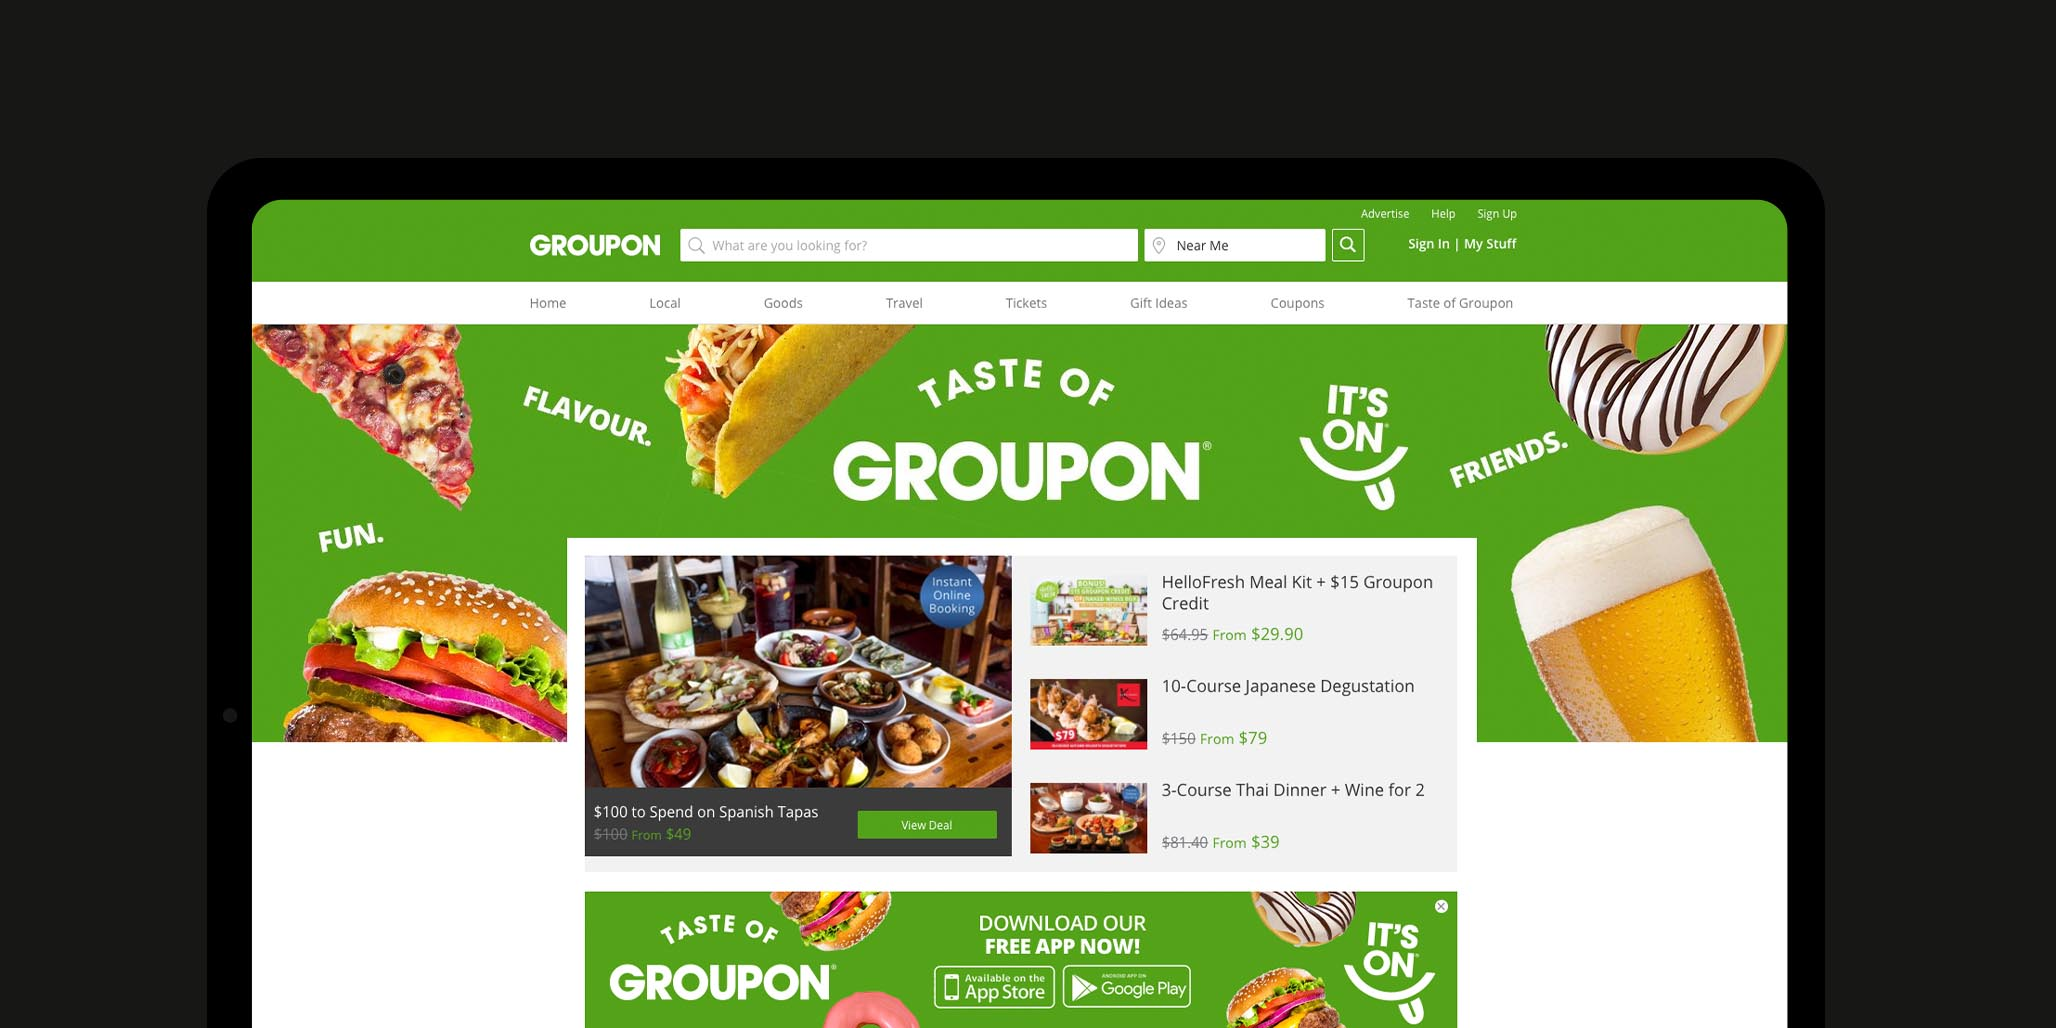 Digital Campaign, Creative Copywriting, Web Banners & Ad Design project in Sydney Australia for global online business brand Groupon, image C